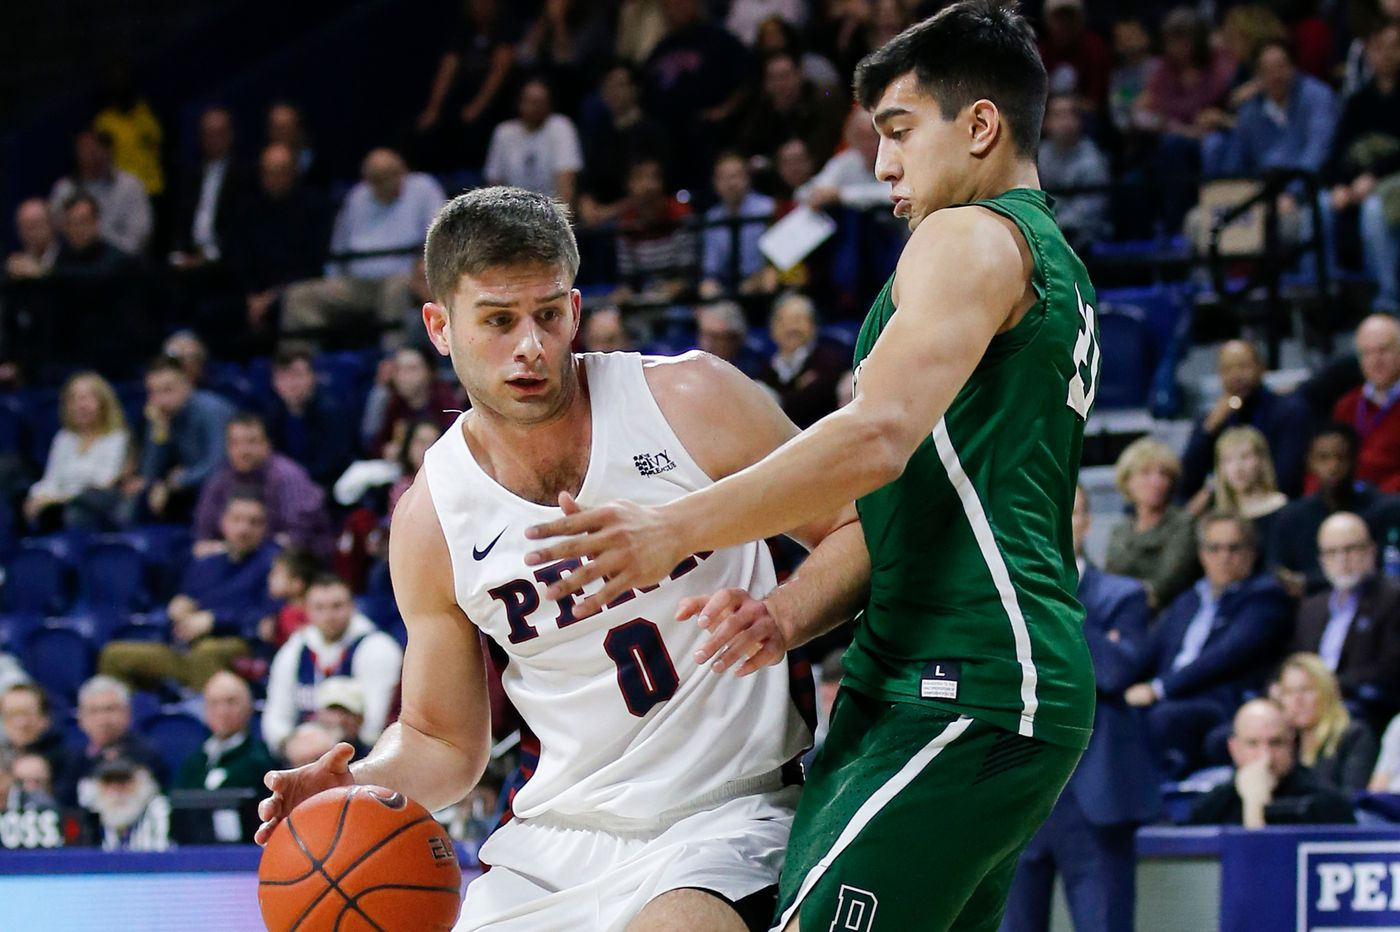 With four games left, Penn fighting for an Ivy League tournament berth